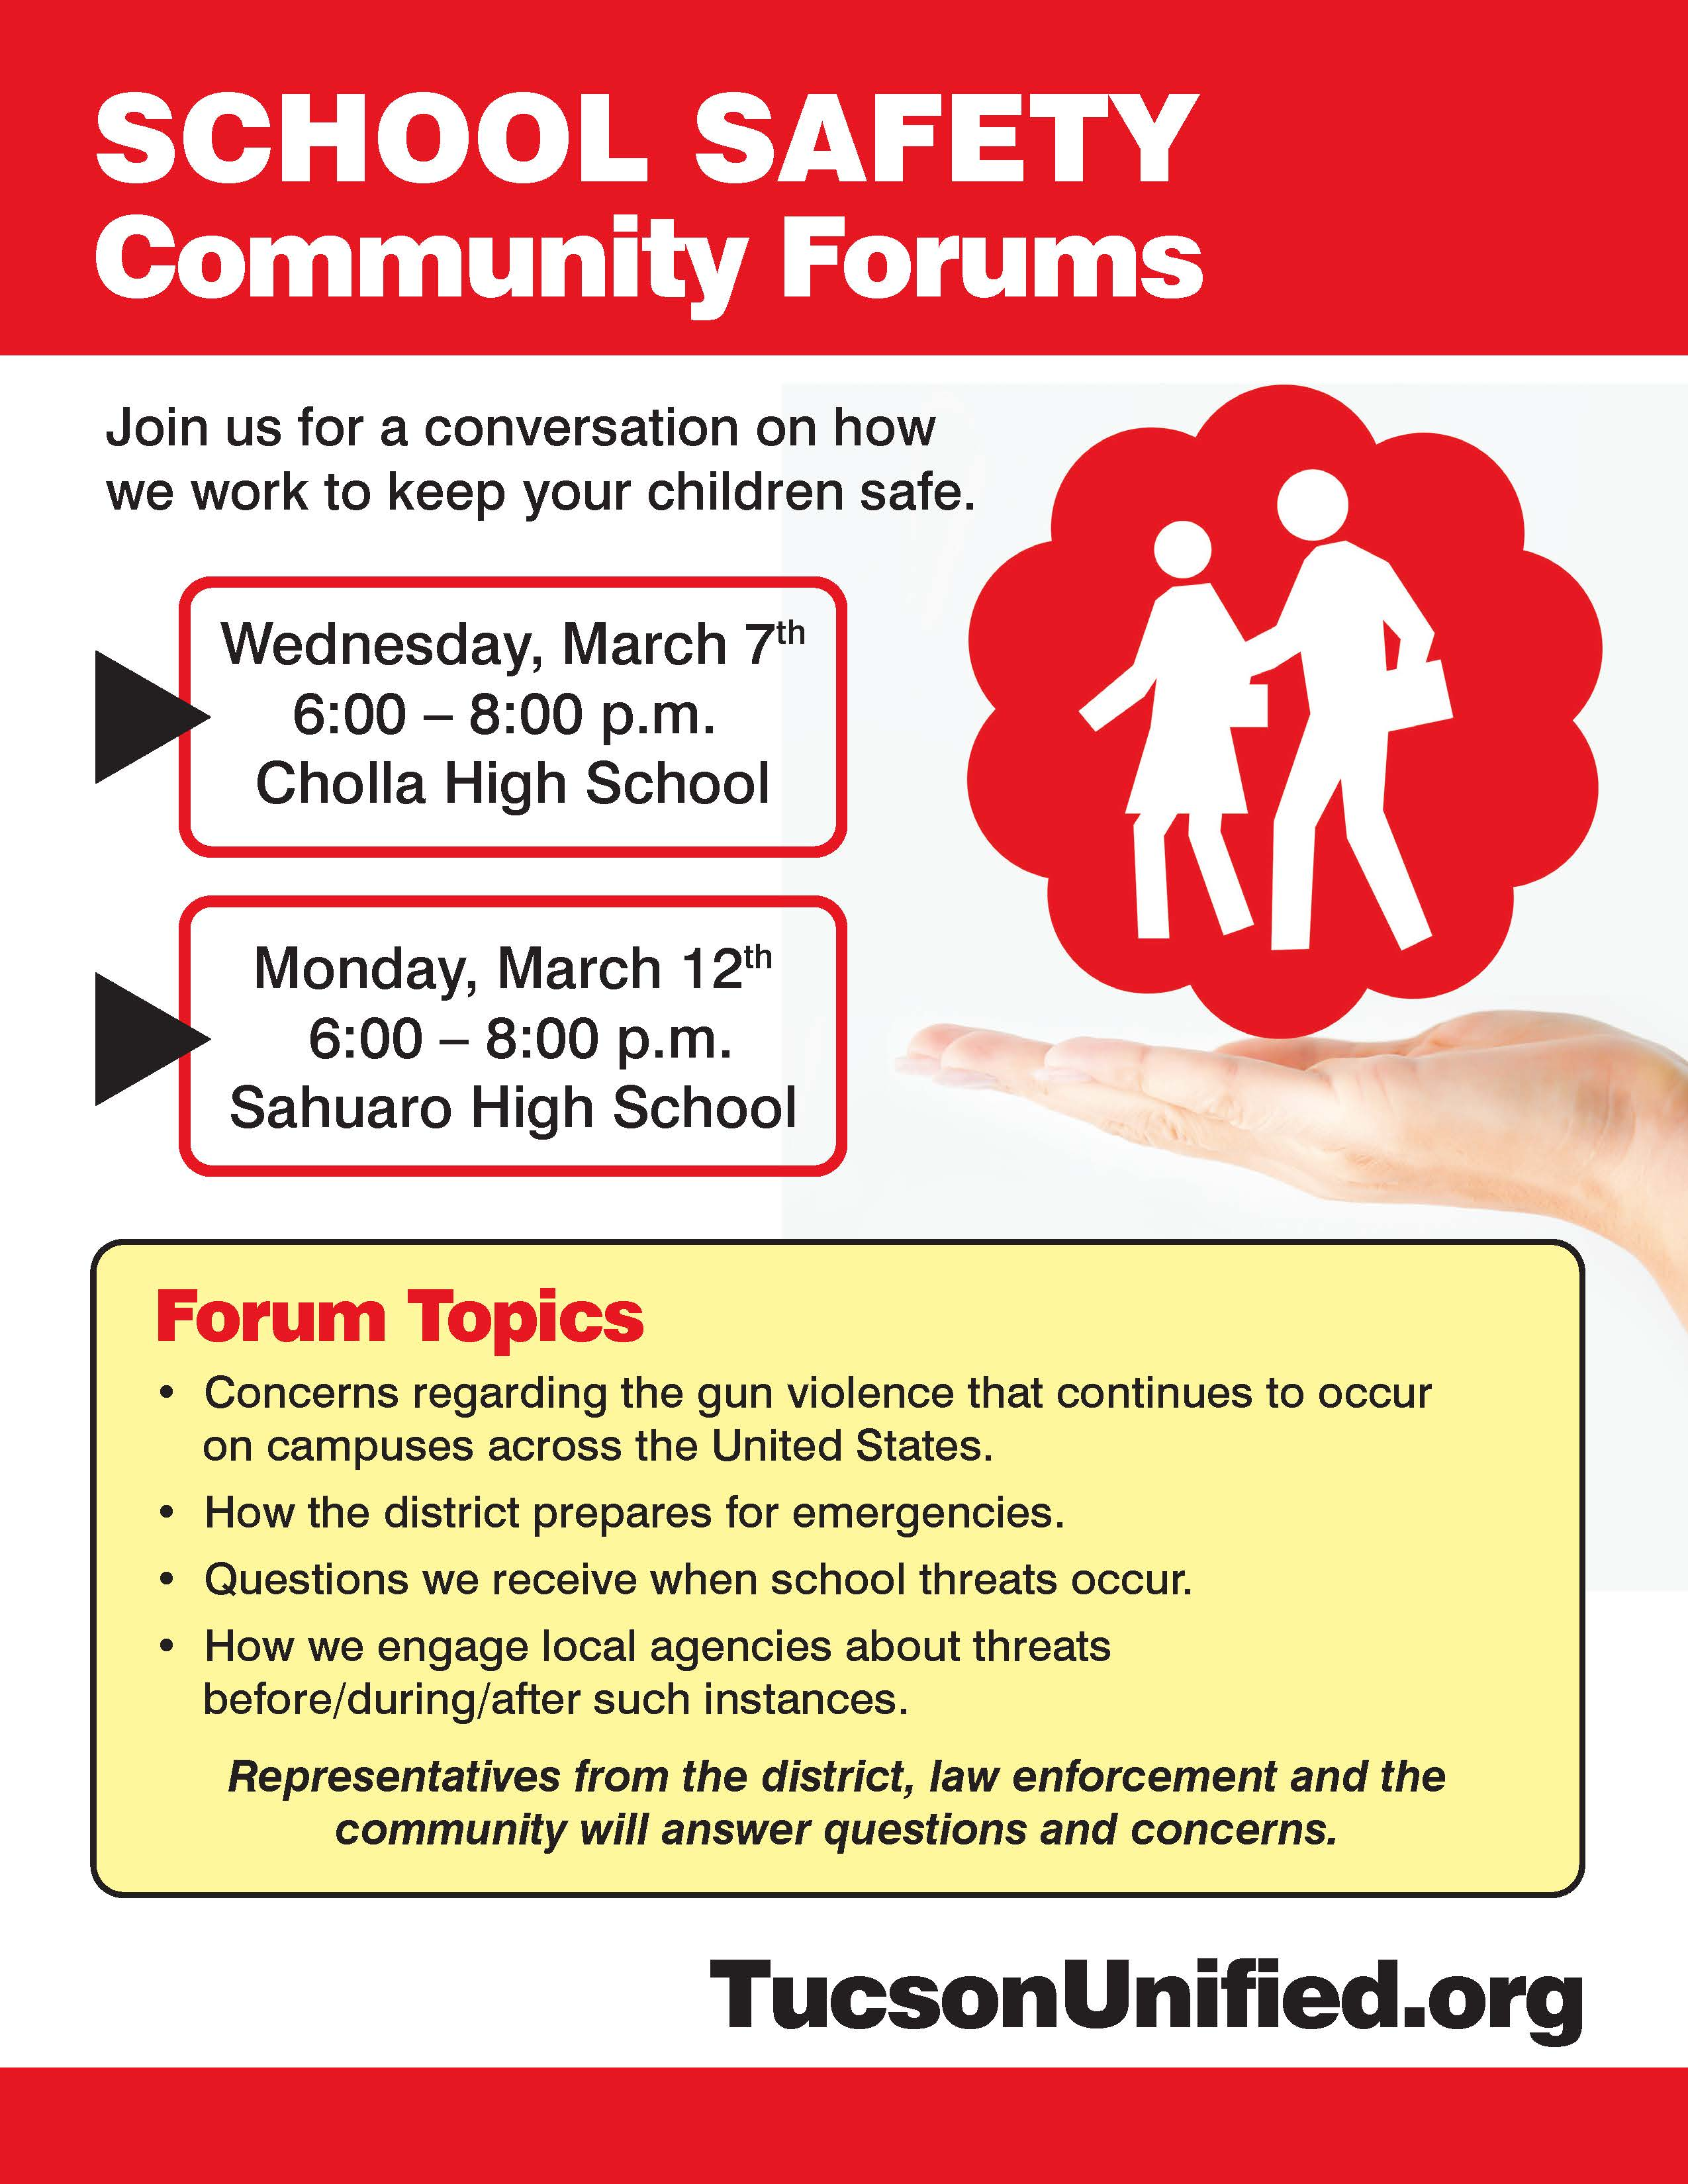 Tucson Unified School District Will Hold Two School Safety Community Forums To Share Information About How The District Works To Ensure Children Are Safe And To Answer Questions From Families And The Public. Courtesy Tucson Unified School District